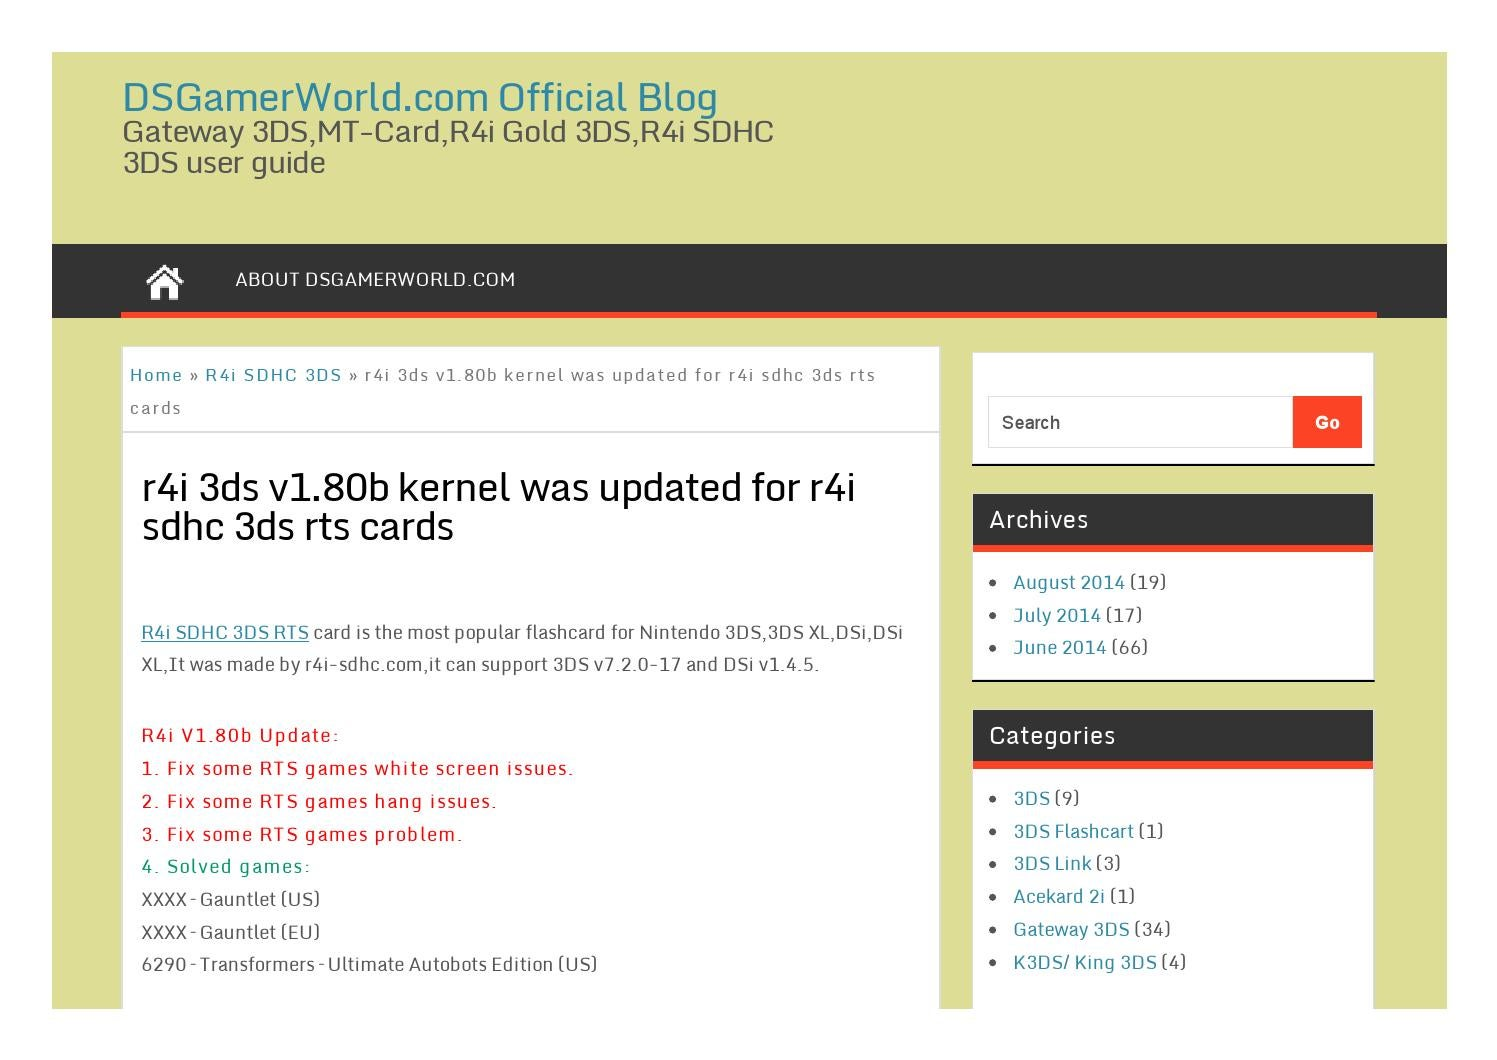 R4i 3ds v1 80b kernel was updated for r4i sdhc 3ds rts cards